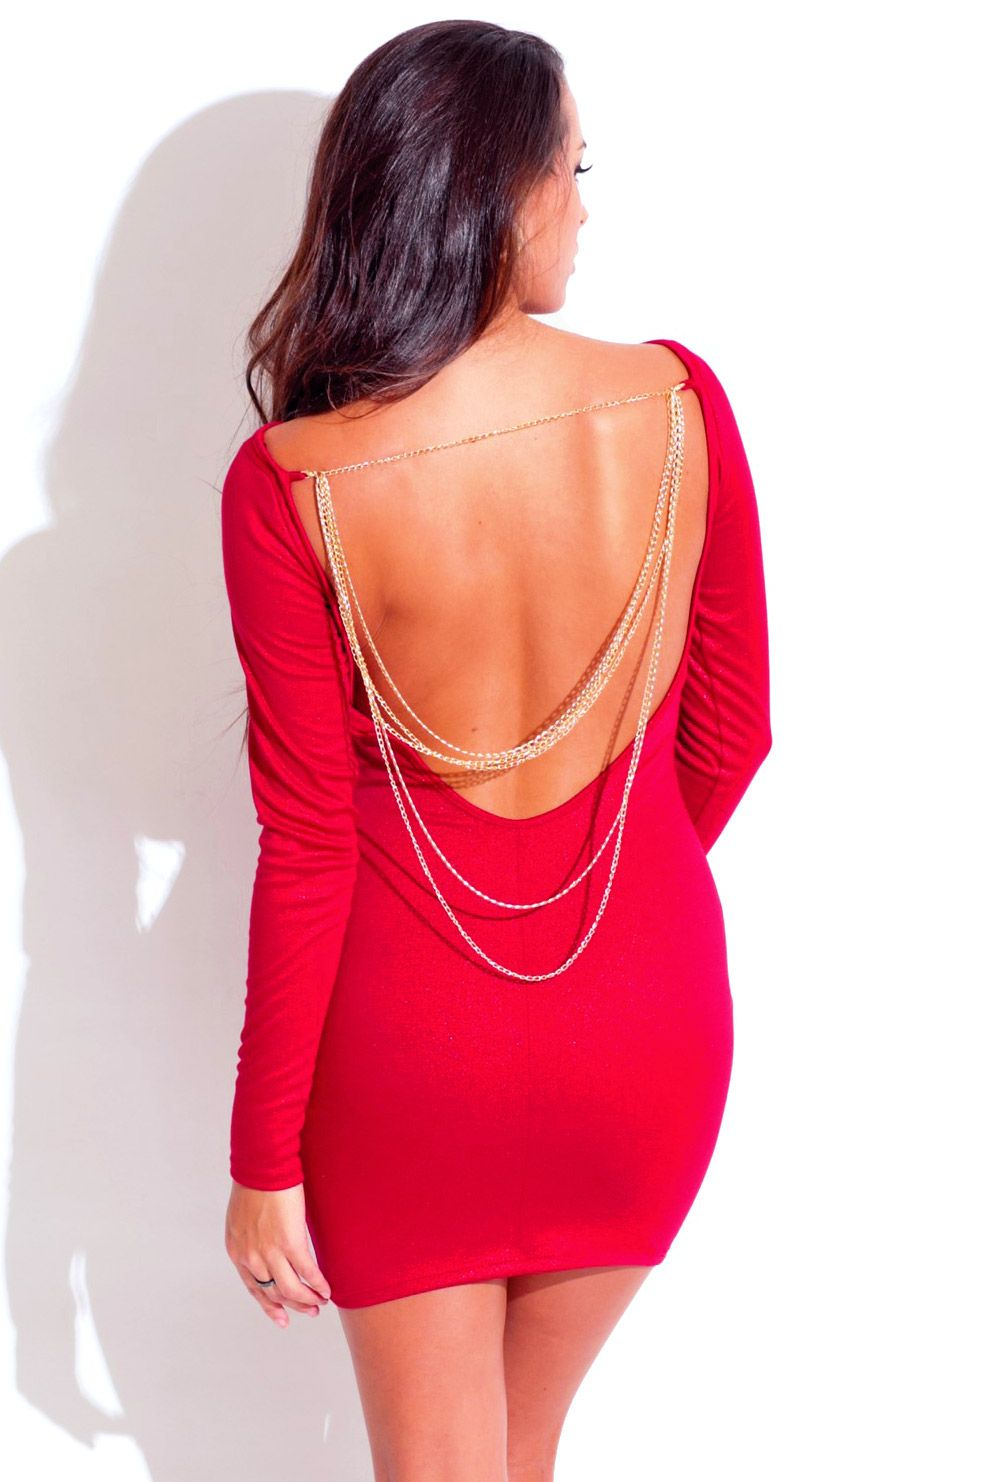 Foreign Accent - lipstick red long sleeve backless bejeweled ...